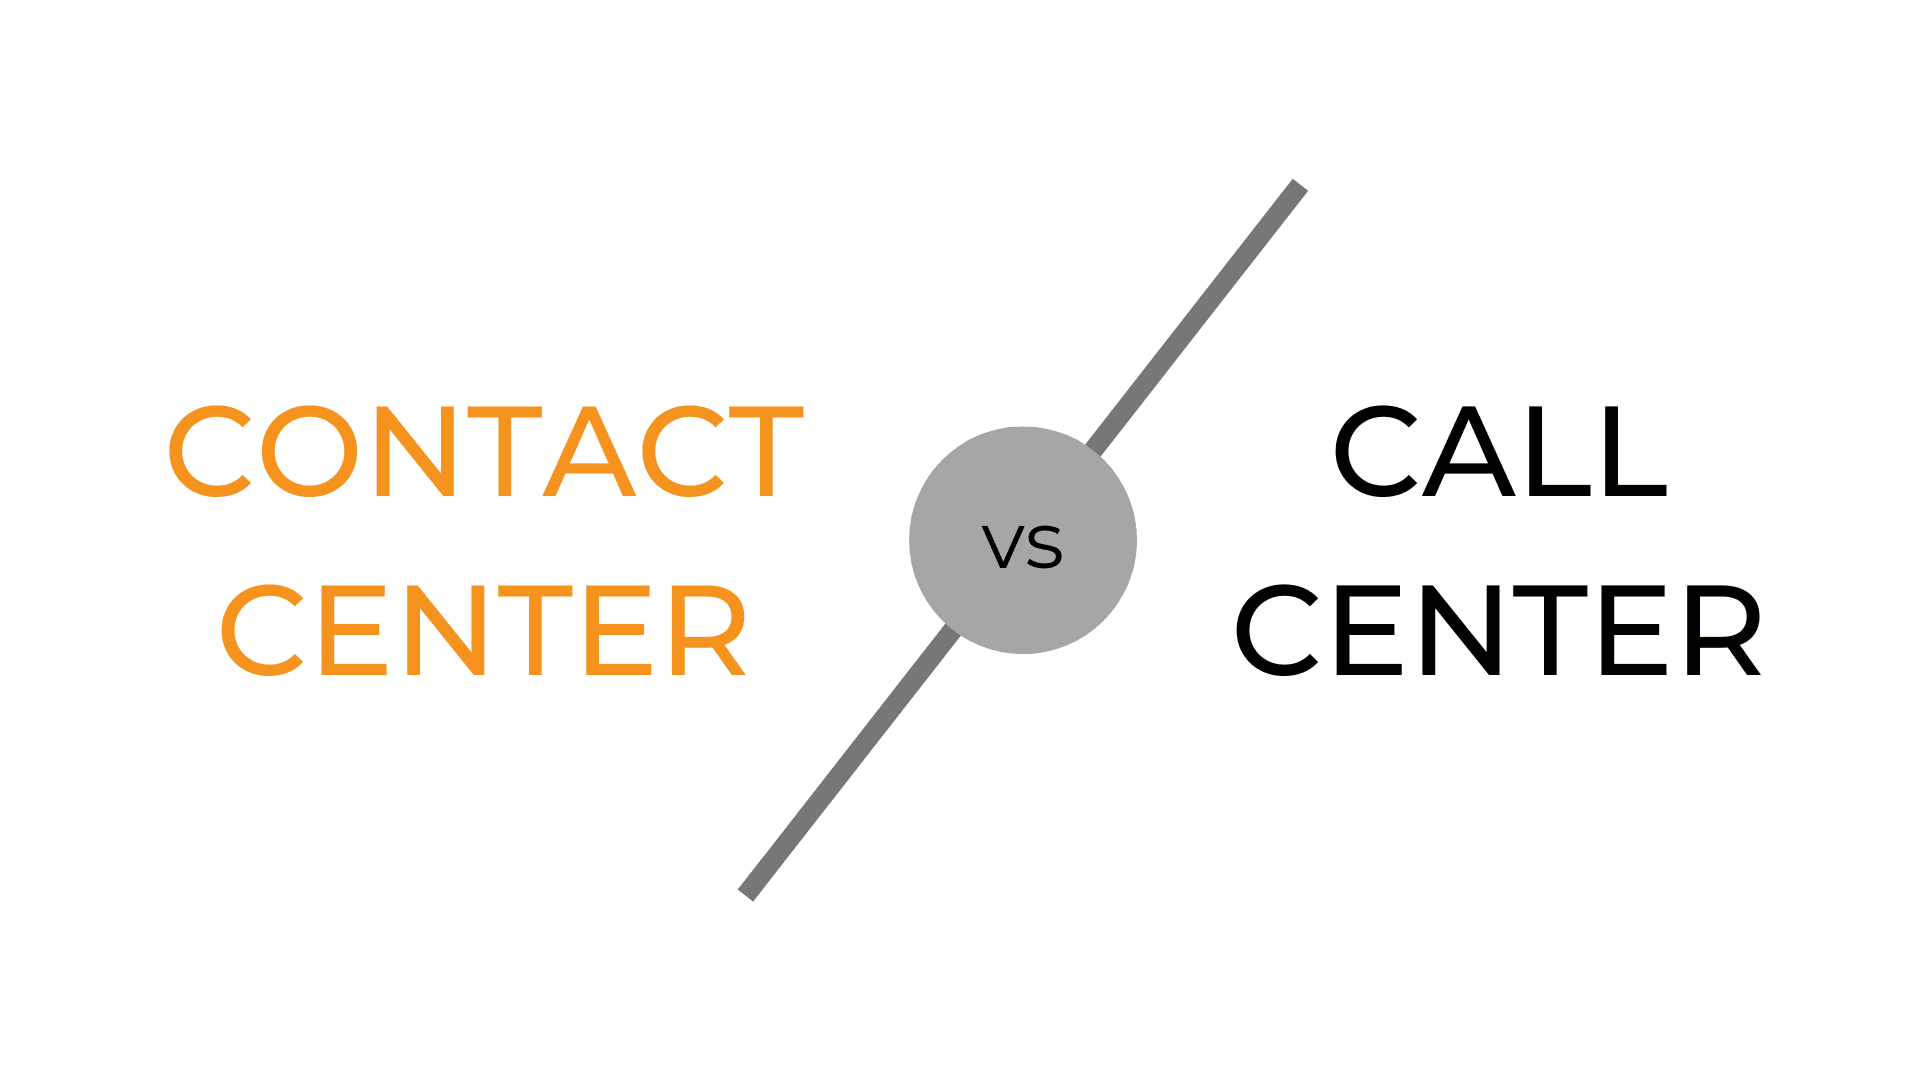 What is Contact Center